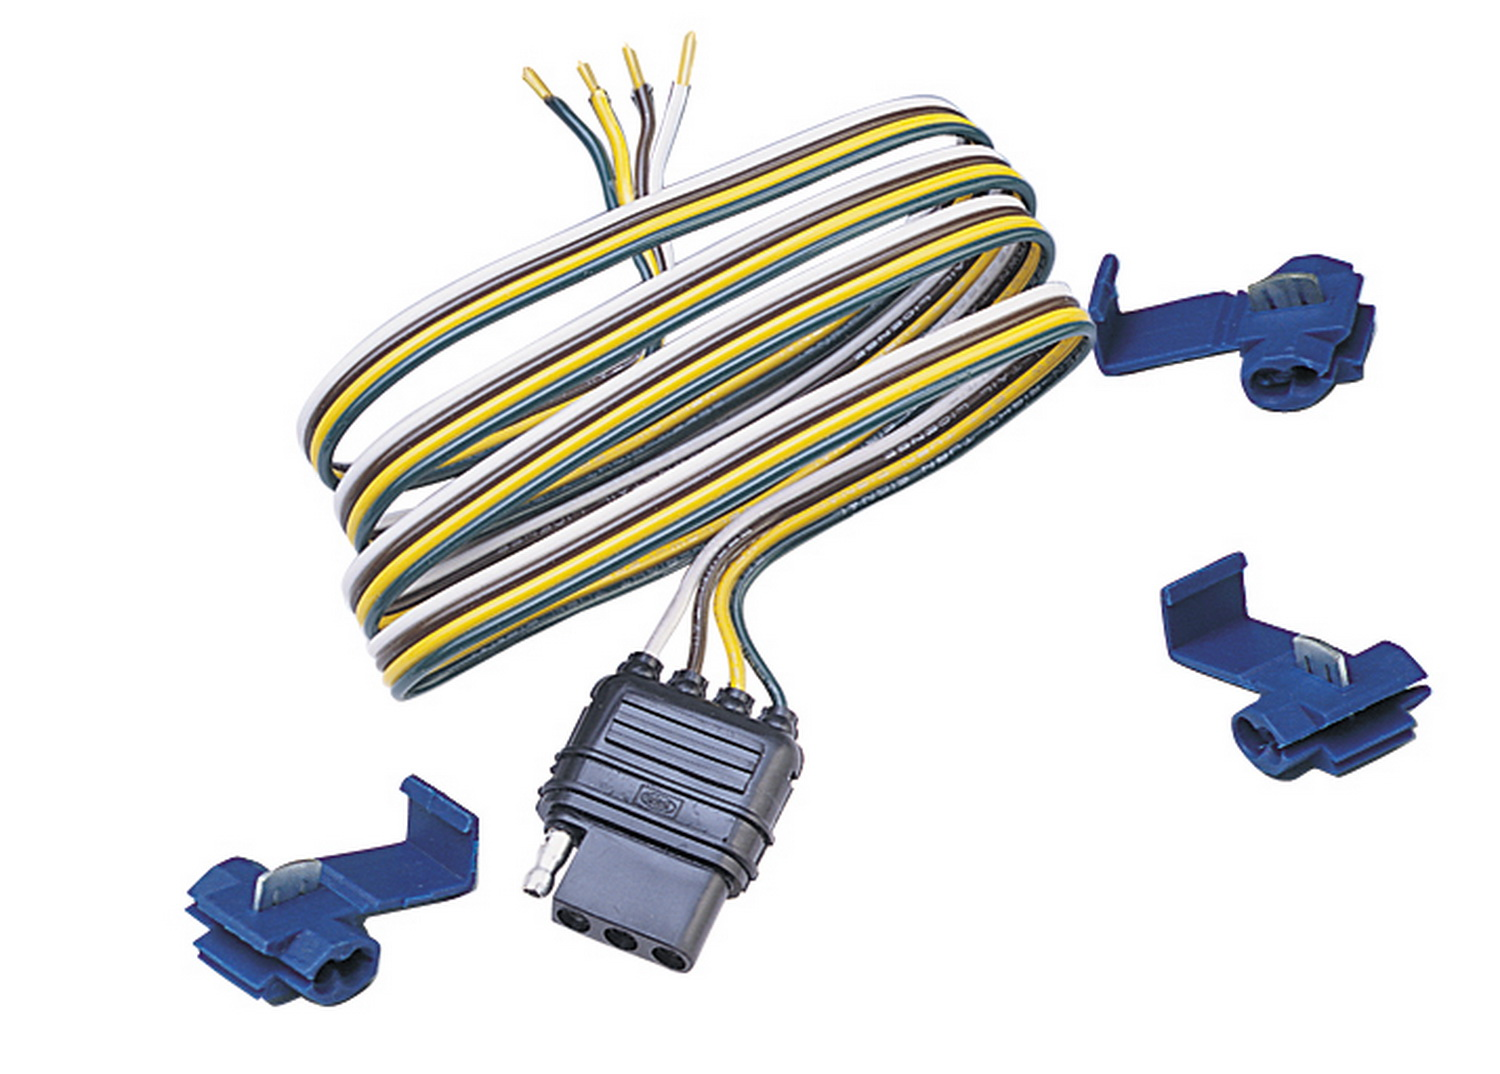 Details About 48025 Hopkins 48025 4 Wire Flat Connector Vehicle To Trailer Wiring Connector